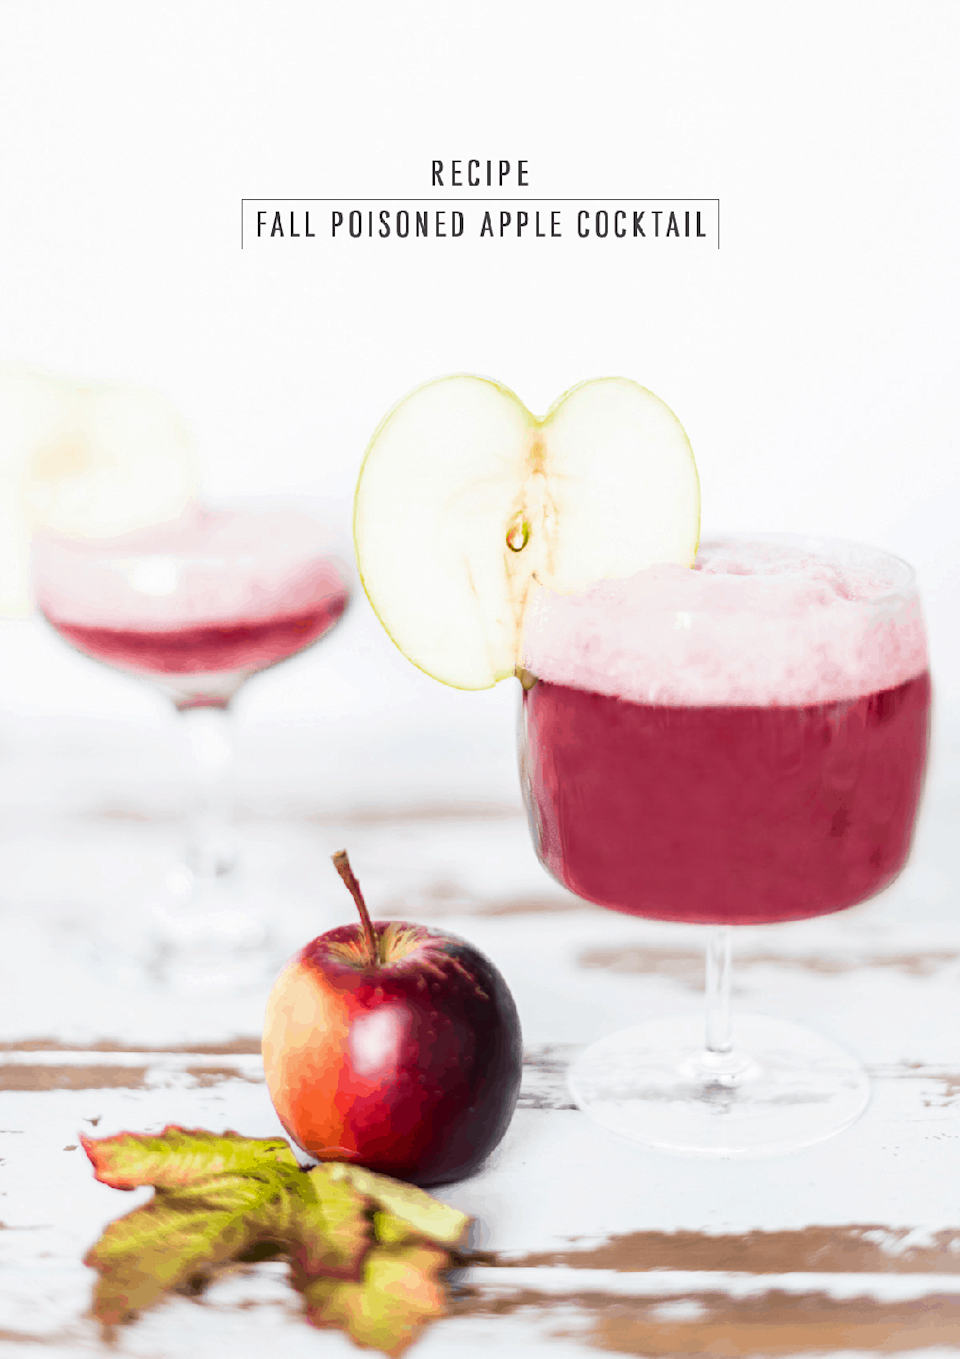 """<p>For an elevated fall drink, this apple brandy concoction will do the trick. Cinnamon and nutmeg give it a lovely spiced flavor.</p><p><strong>Get the recipe at <a href=""""https://sugarandcloth.com/fall-poisoned-apple-cocktail/"""" rel=""""nofollow noopener"""" target=""""_blank"""" data-ylk=""""slk:Sugar & Cloth"""" class=""""link rapid-noclick-resp"""">Sugar & Cloth</a>.</strong></p><p><strong><a class=""""link rapid-noclick-resp"""" href=""""https://go.redirectingat.com?id=74968X1596630&url=https%3A%2F%2Fwww.walmart.com%2Fbrowse%2Fdining-entertaining%2Fdrinkware%2F4044_623679_639999_3148543%3Ffacet%3Dbrand%253AThe%2BPioneer%2BWoman&sref=https%3A%2F%2Fwww.thepioneerwoman.com%2Ffood-cooking%2Fmeals-menus%2Fg33510531%2Ffall-cocktail-recipes%2F"""" rel=""""nofollow noopener"""" target=""""_blank"""" data-ylk=""""slk:SHOP DRINKWARE"""">SHOP DRINKWARE</a><br></strong></p>"""